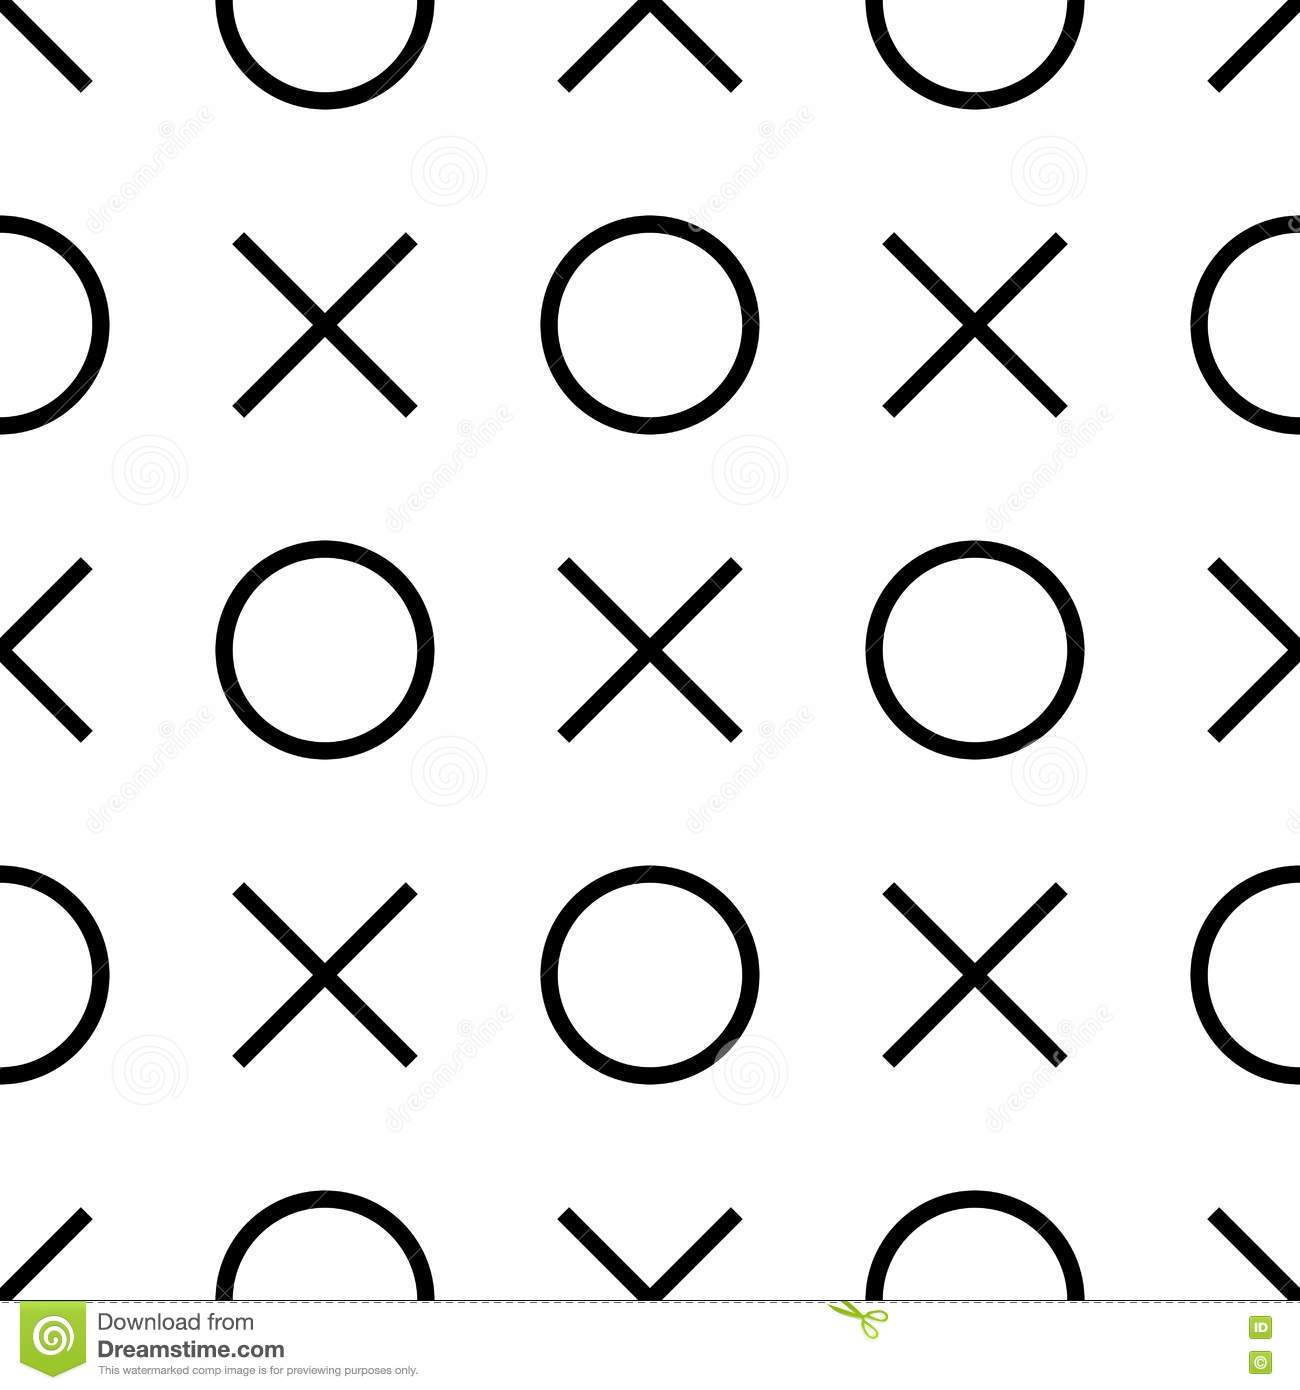 Tile X O Noughts And Crosses Black And White Vector